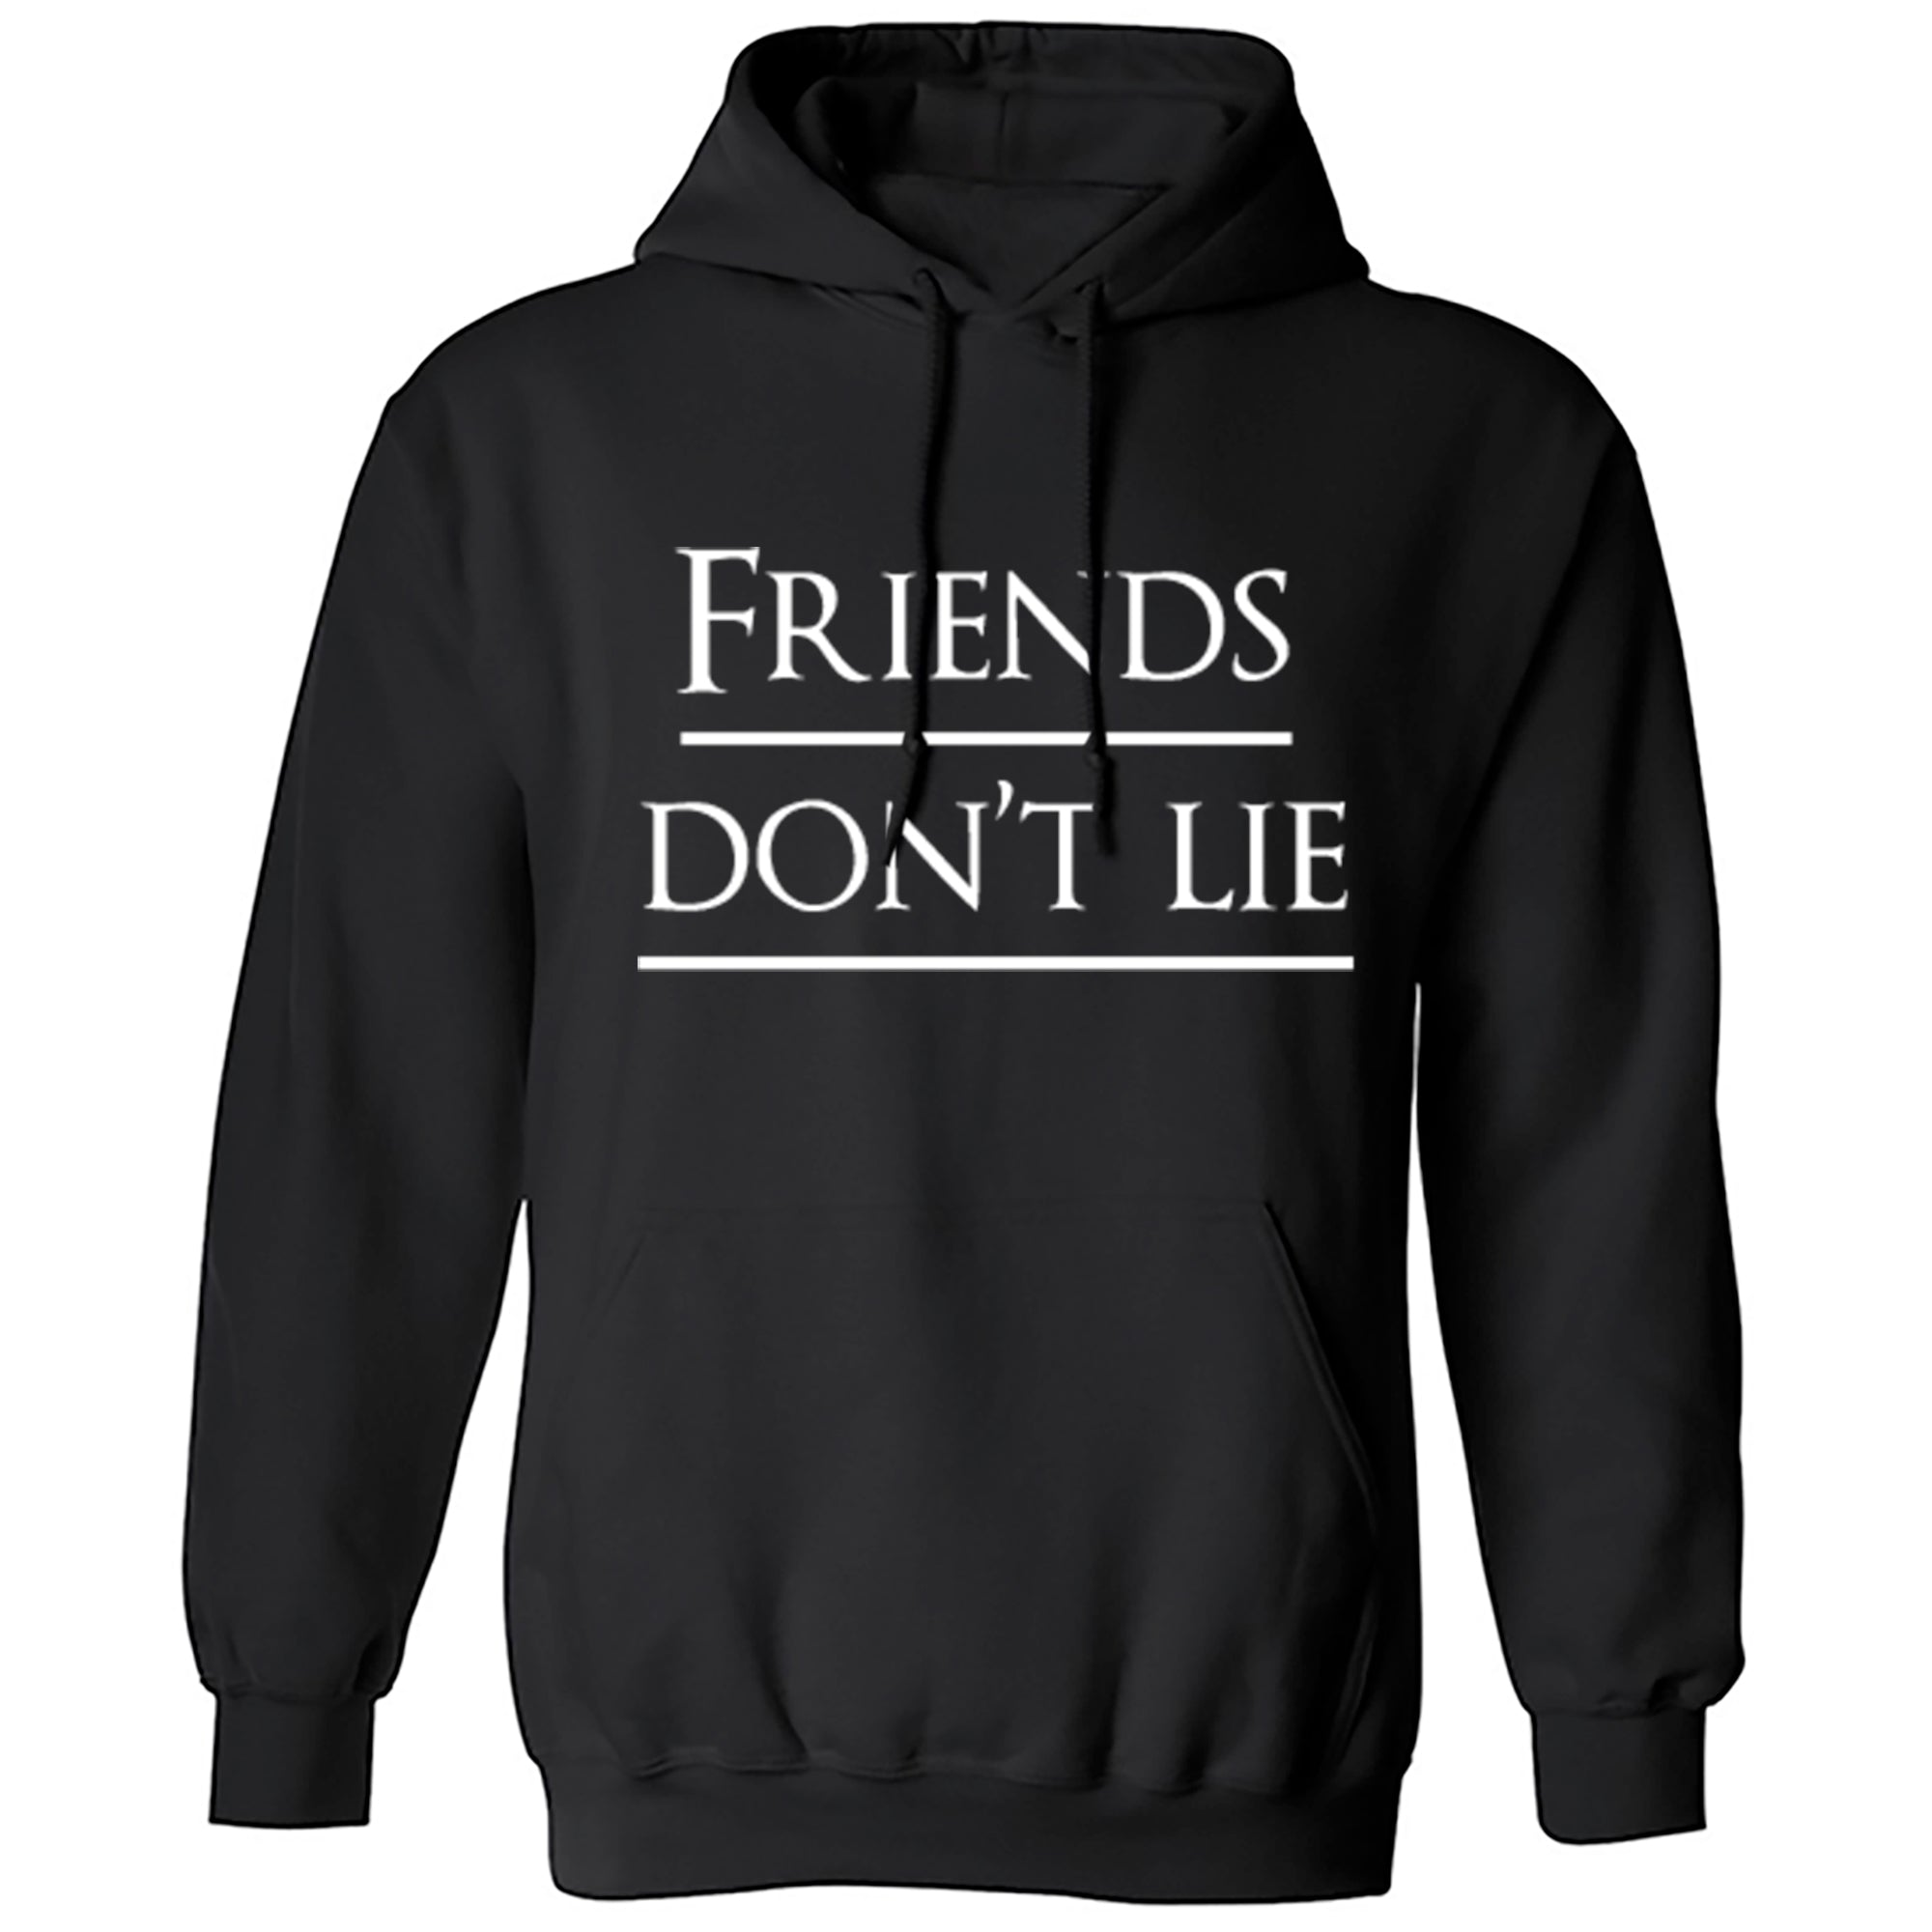 Friends Don't Lie Unisex Hoodie S0381 - Illustrated Identity Ltd.